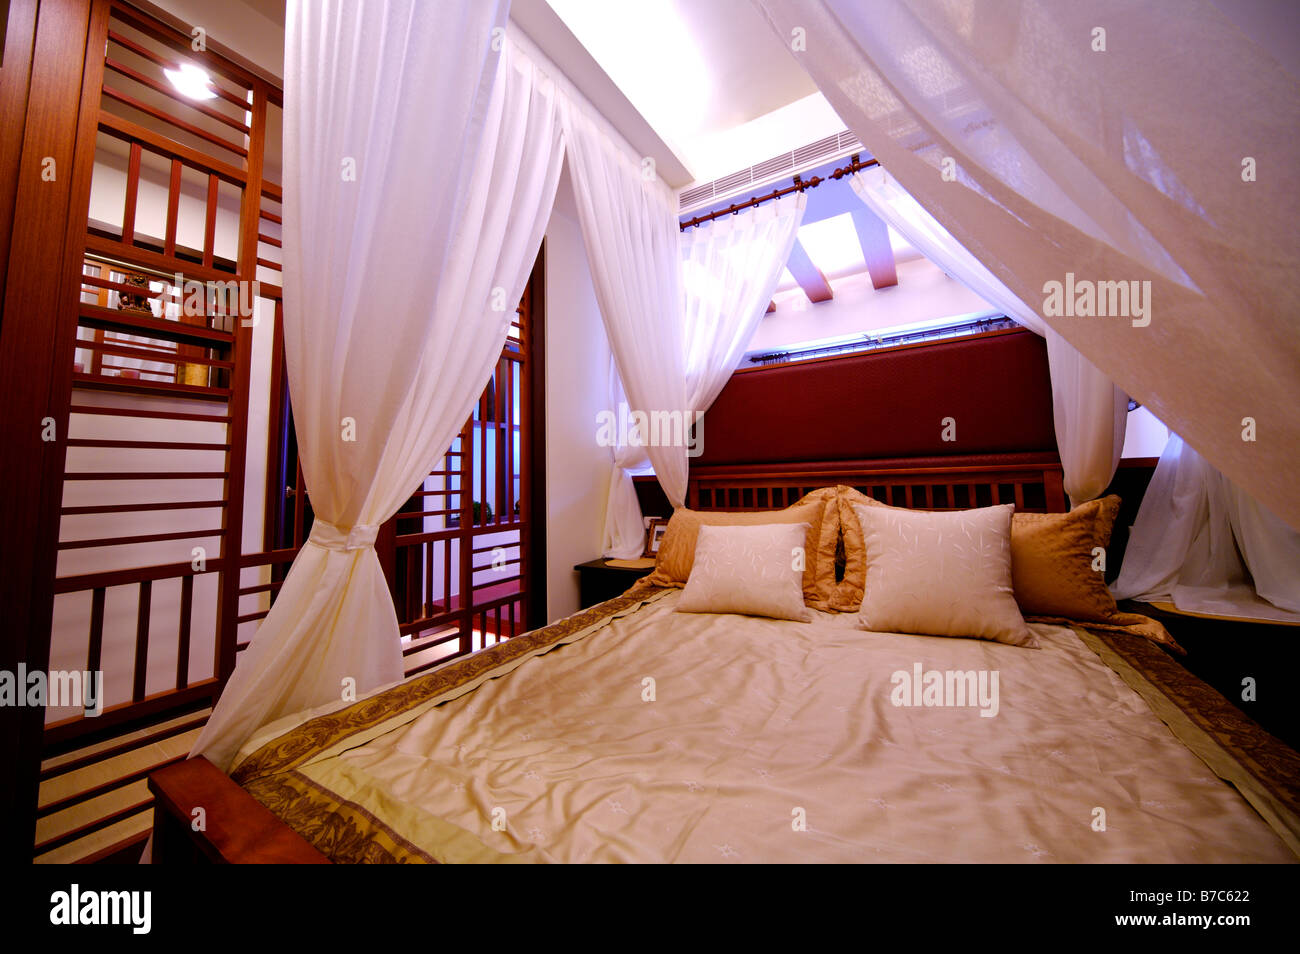 Modern four poster bed with white curtains at the four corners Stock Photo